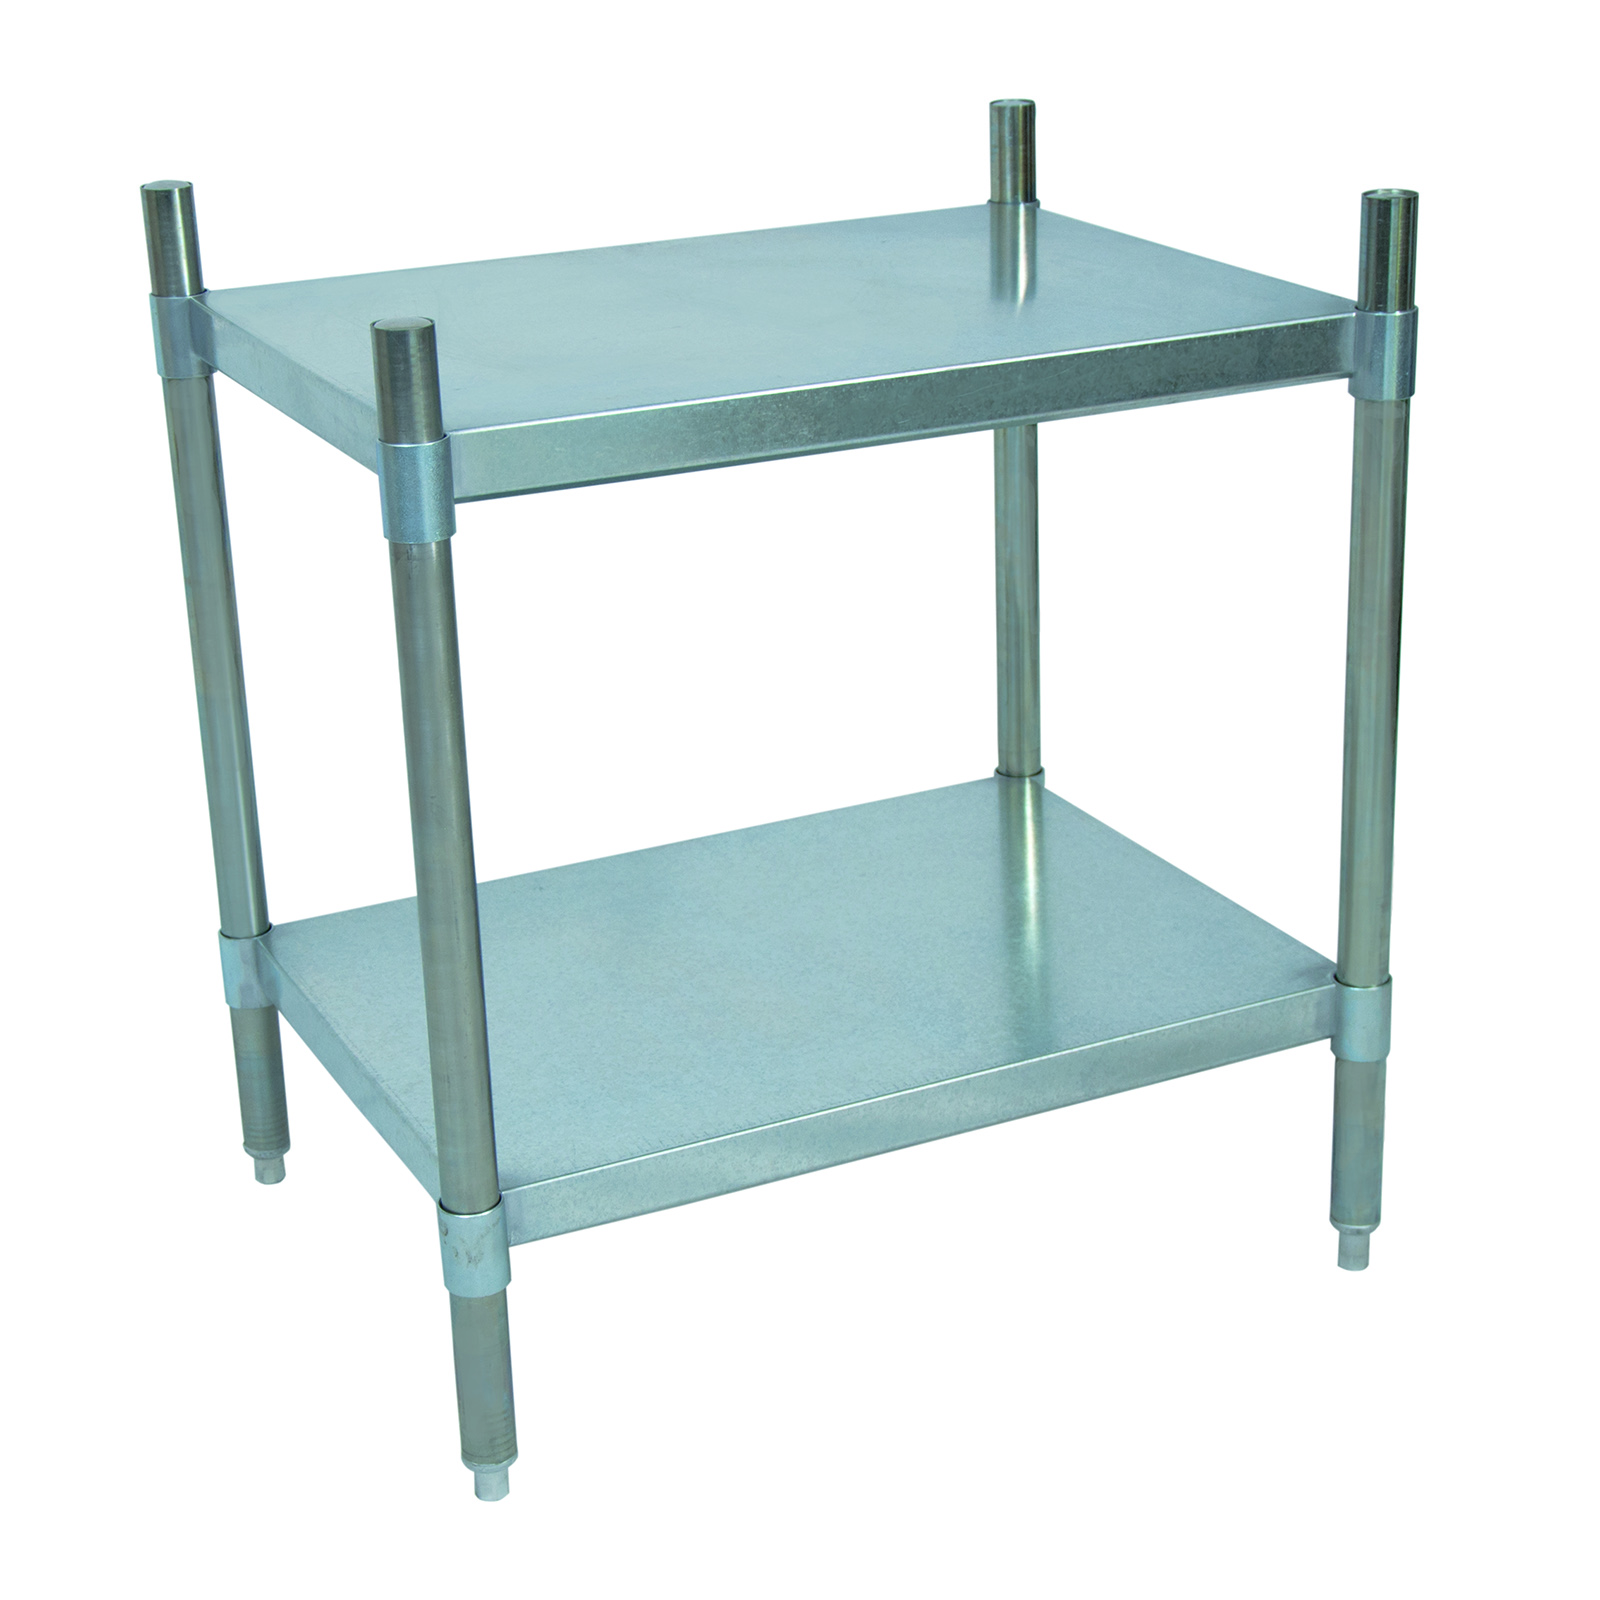 BK Resources VSU3-5524 shelving unit, solid flat